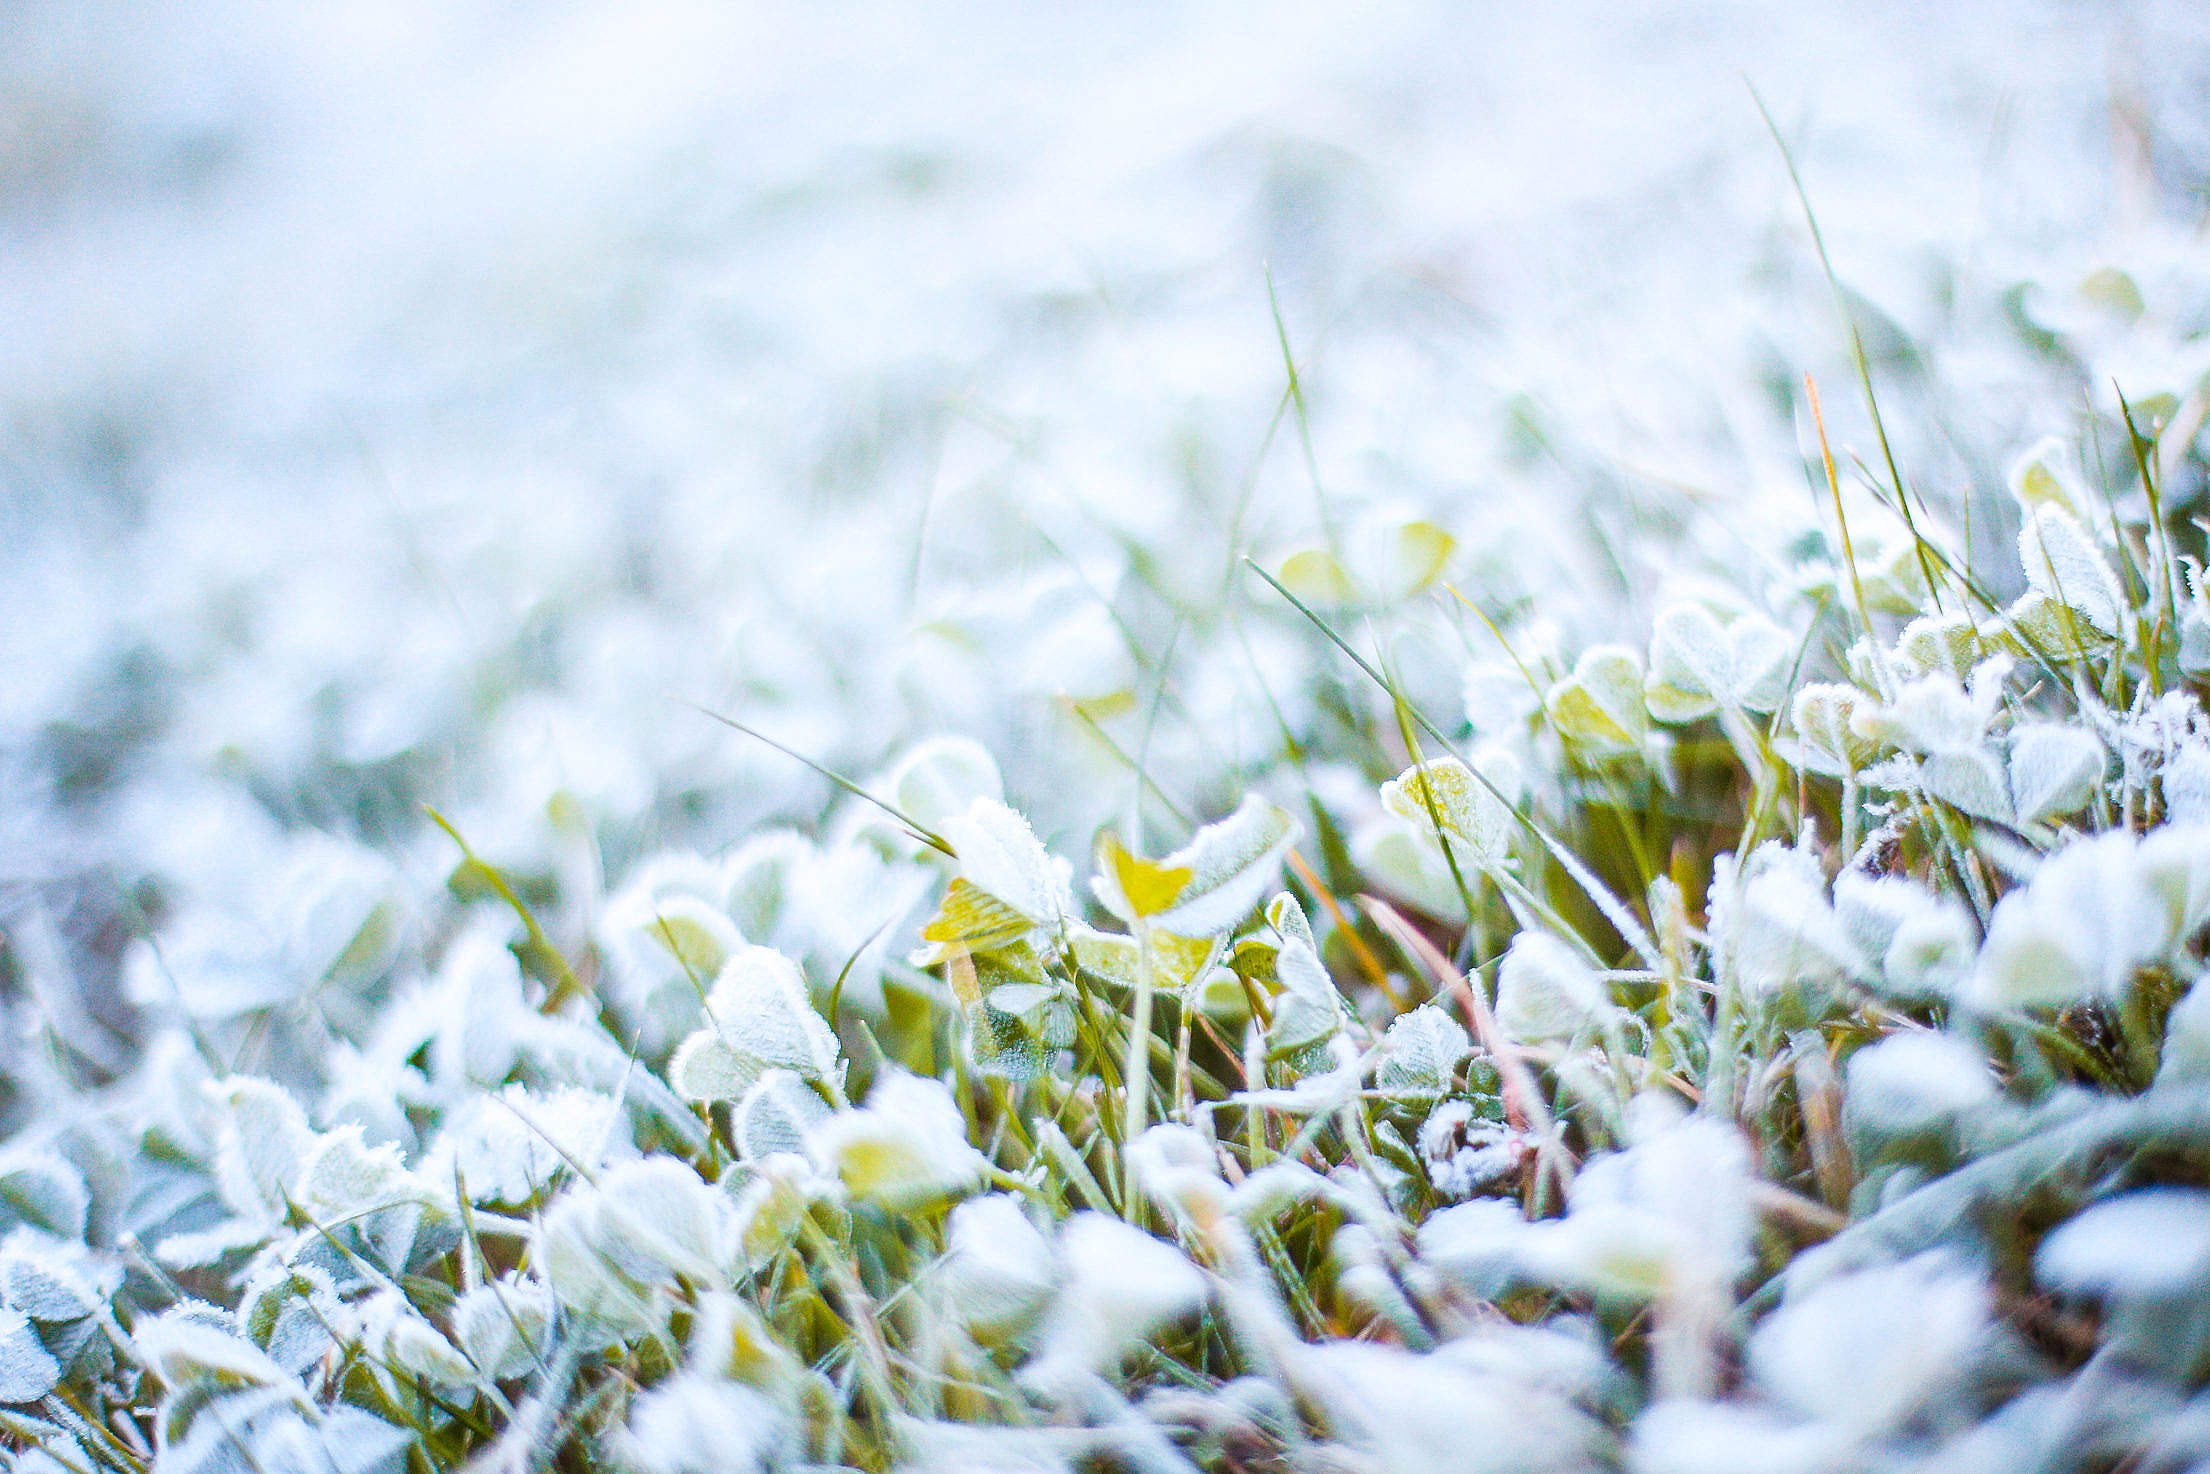 Morning Frozen Grass with Hoarfrost Free Stock Photo